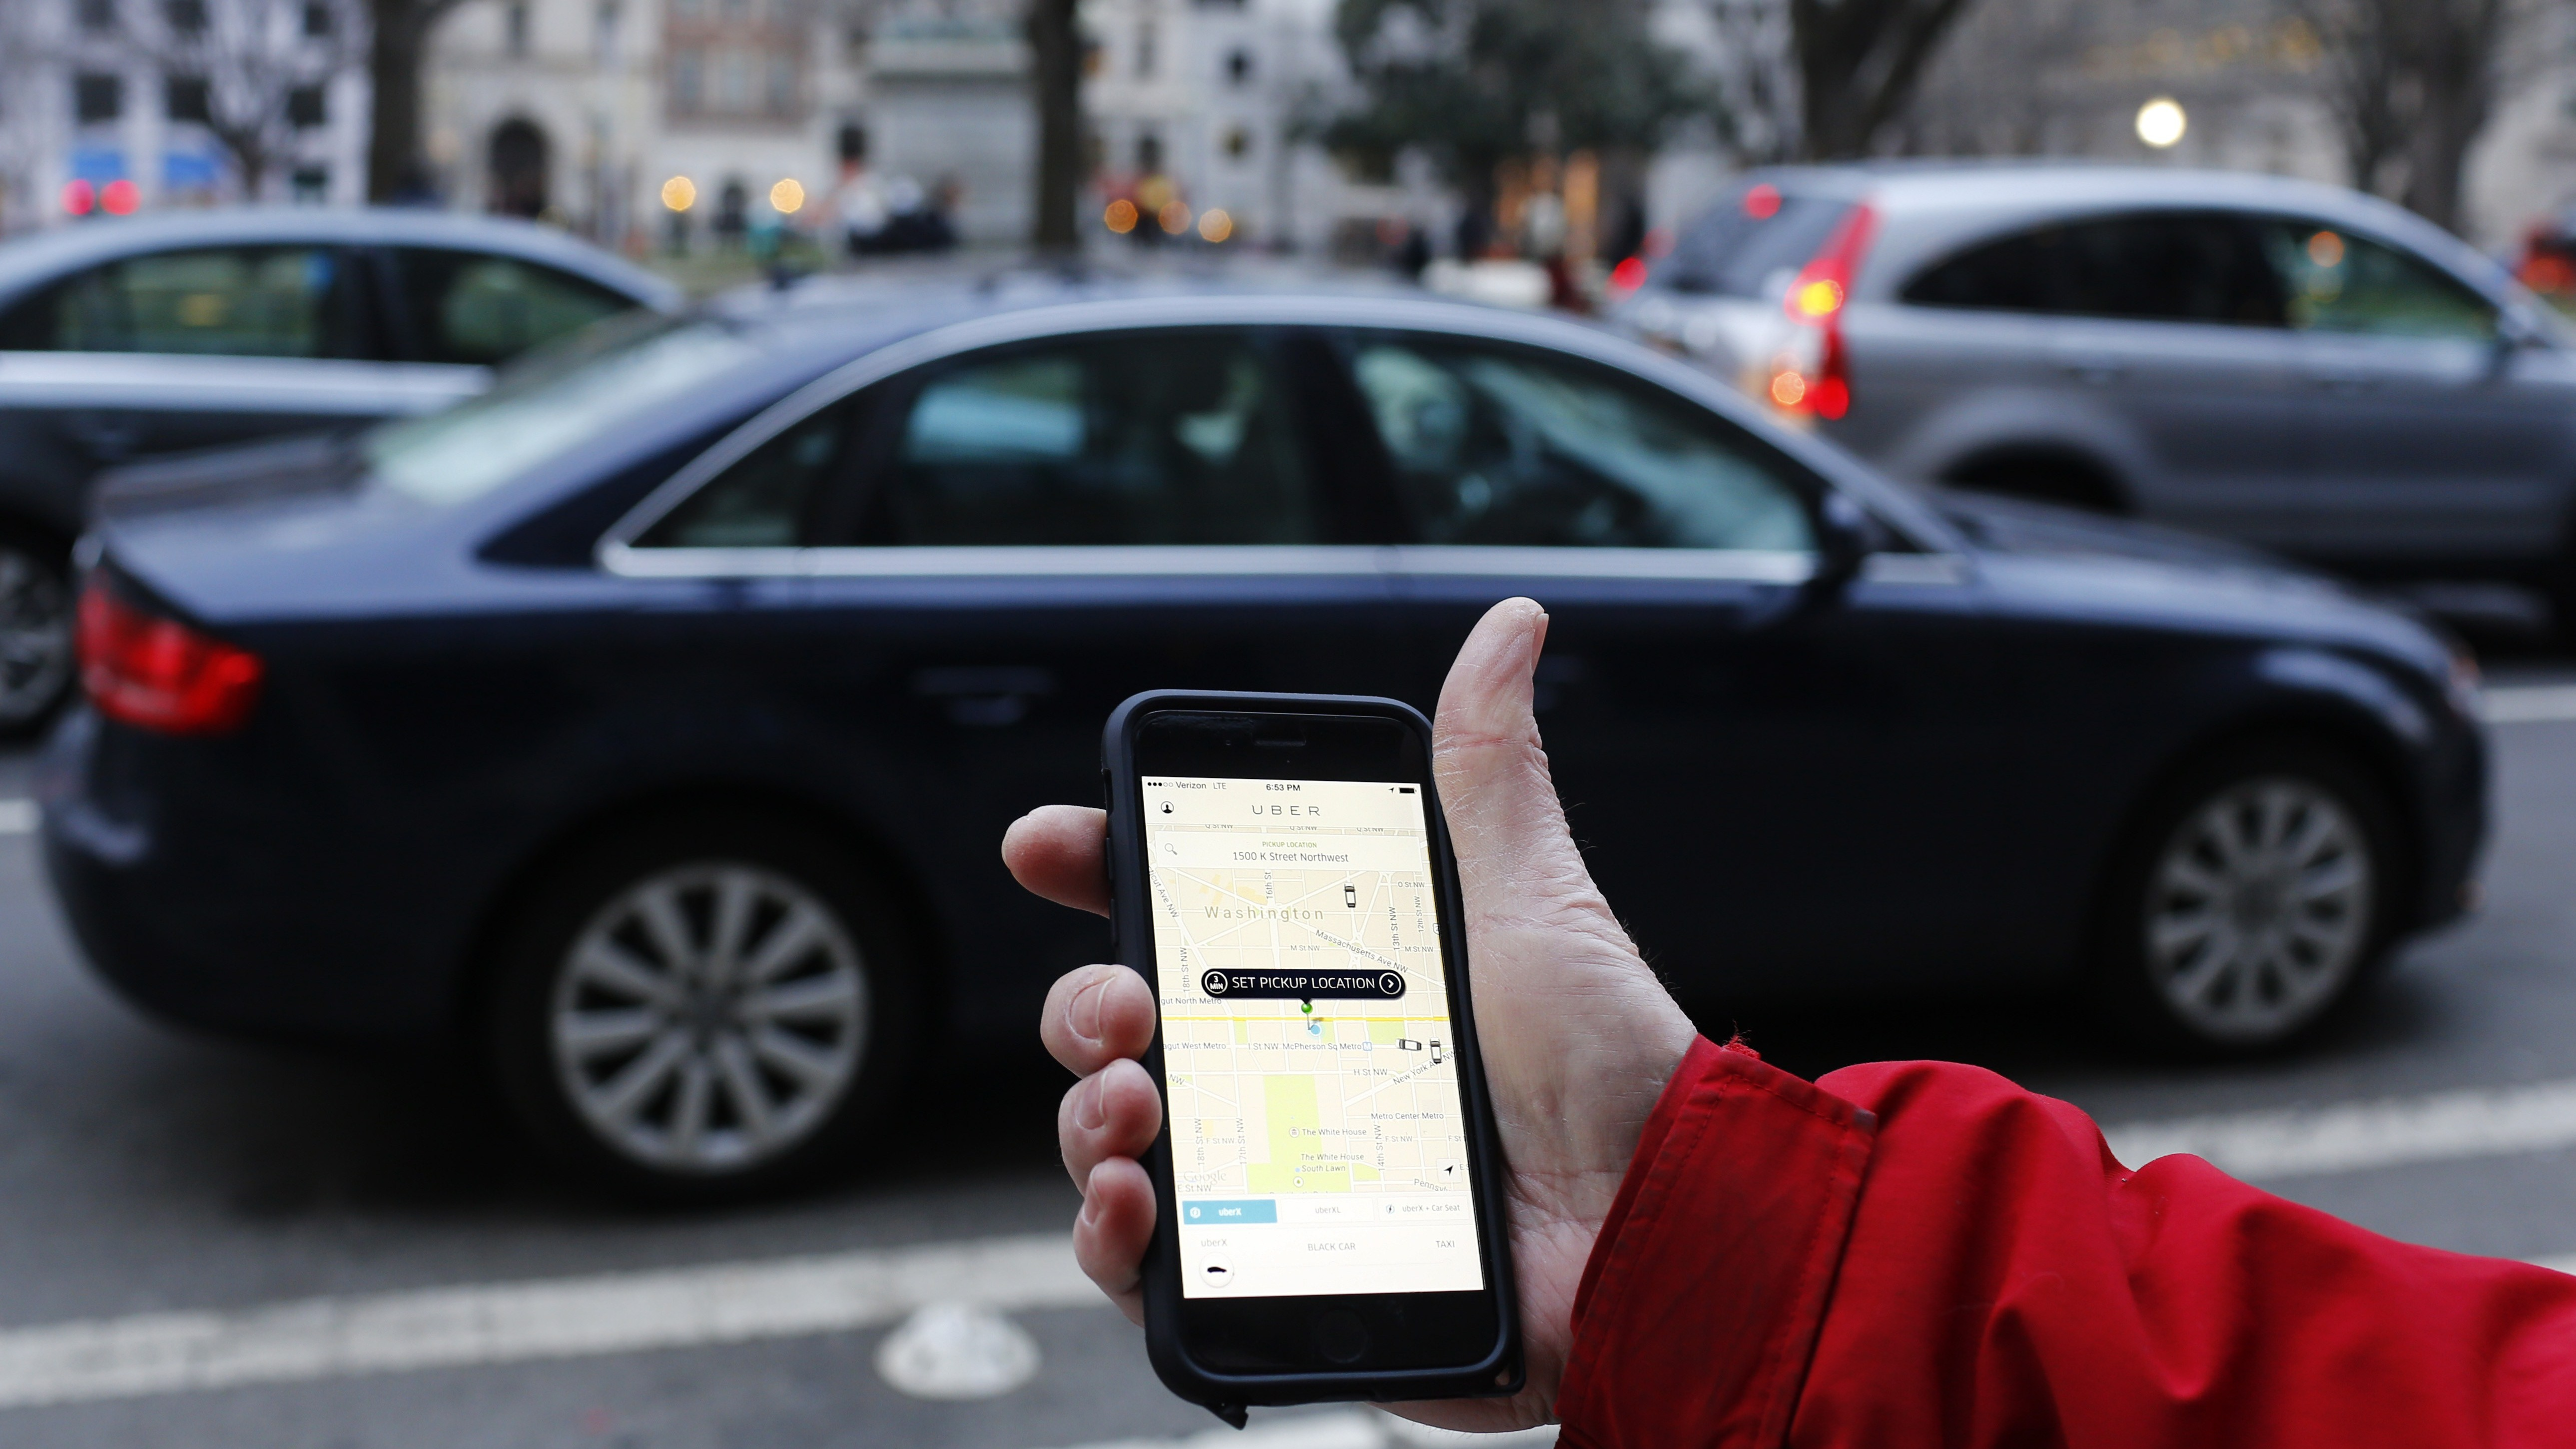 Uber Users Say They're Being Charged for Trips They Didn't Take